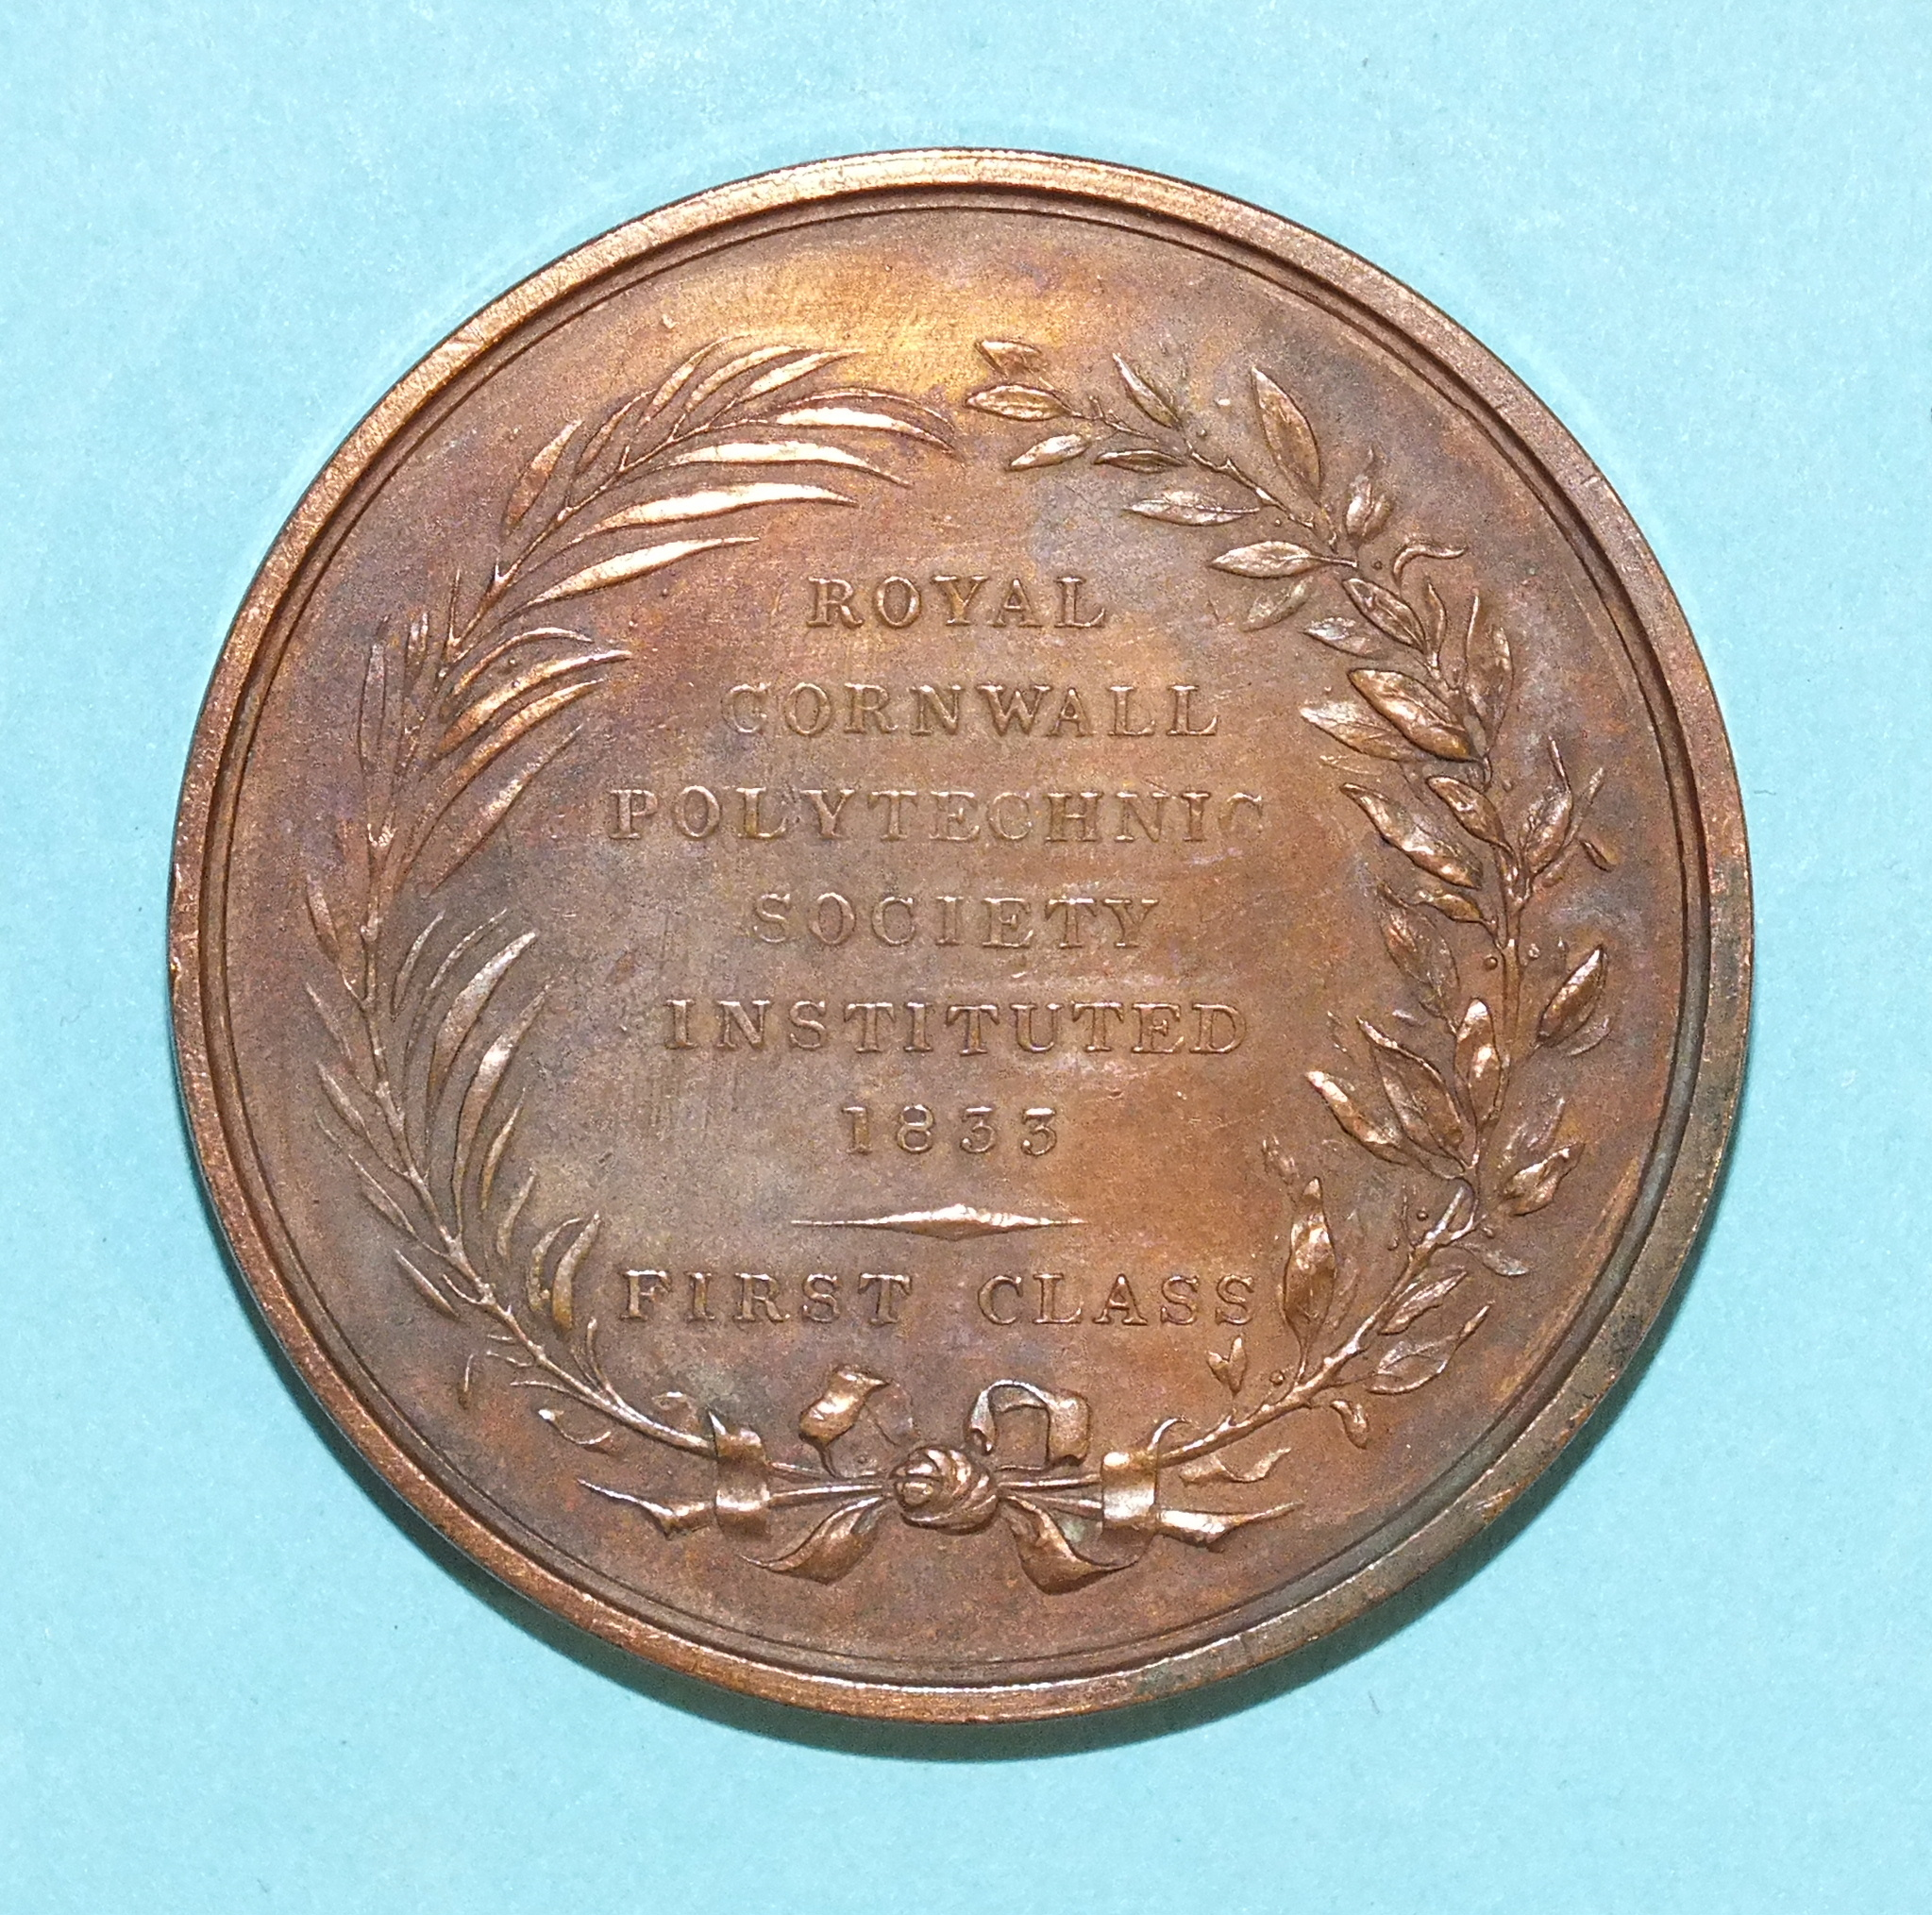 Lot 169 - A British Academic Medal, Bronze 4.5cm wide, Royal Cornwall Polytechnic Society First Class James